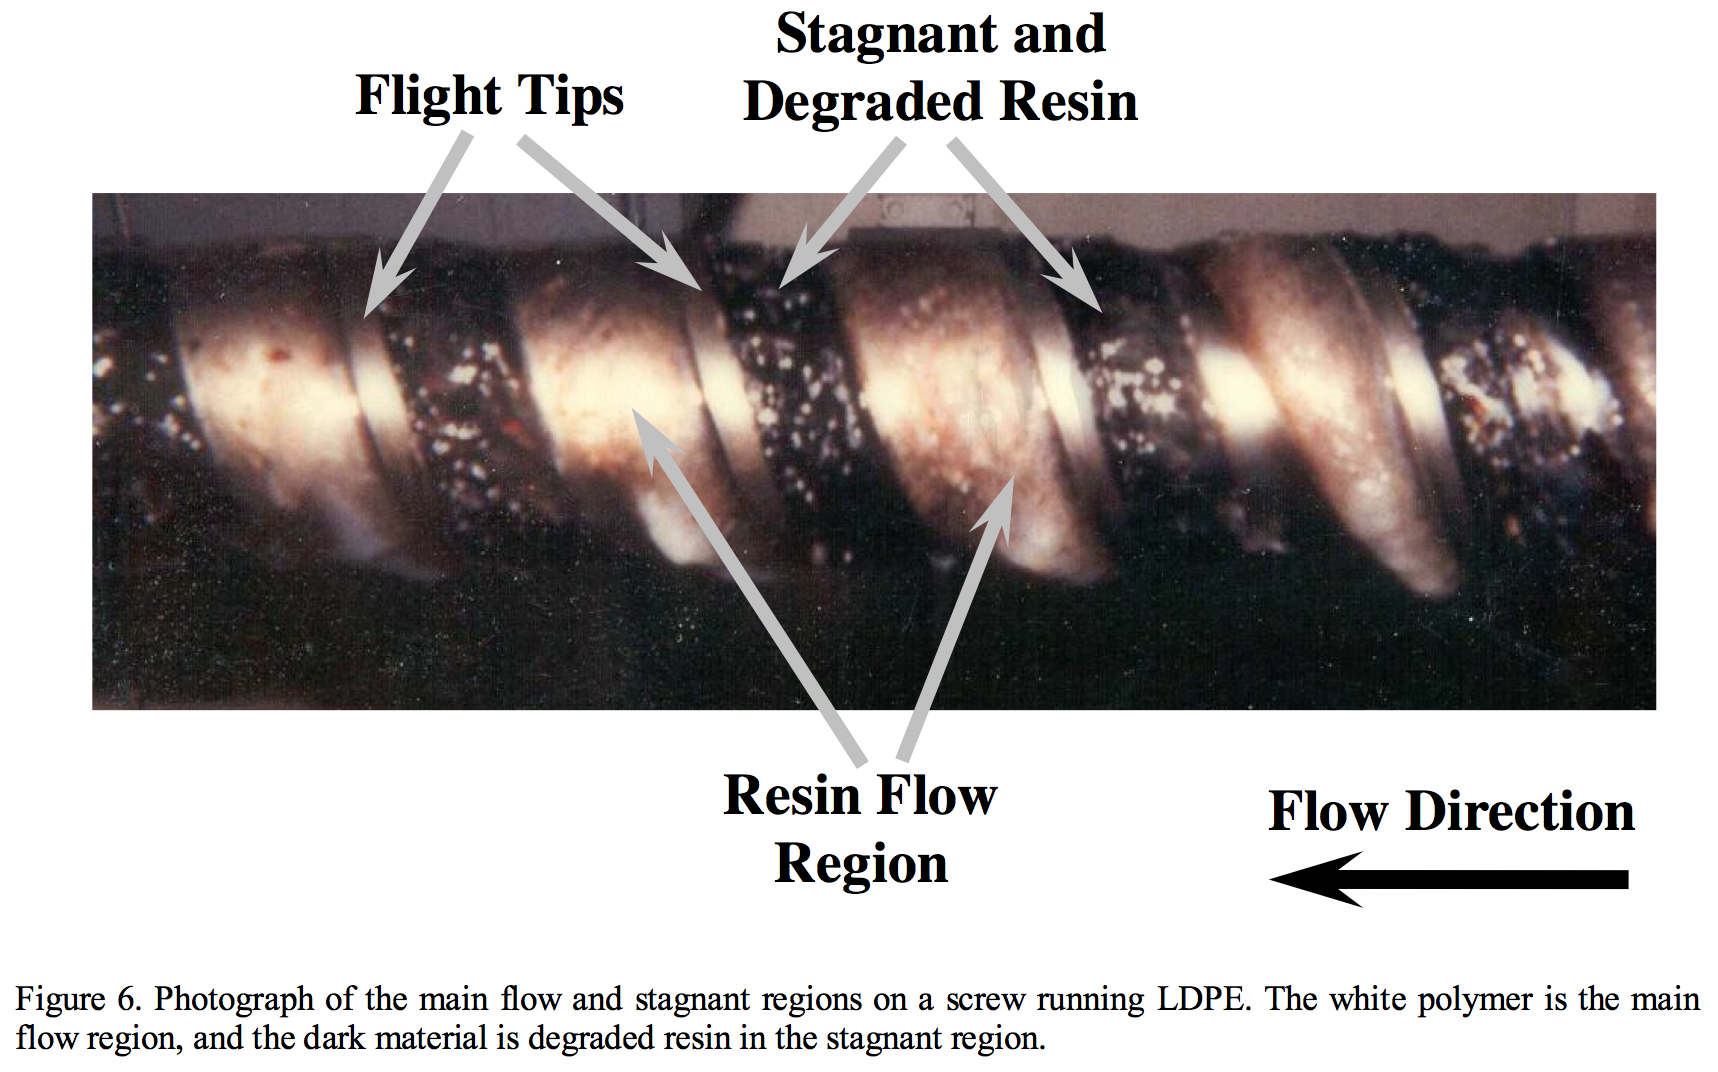 Main flow and stagnant regions on screw running LDPE